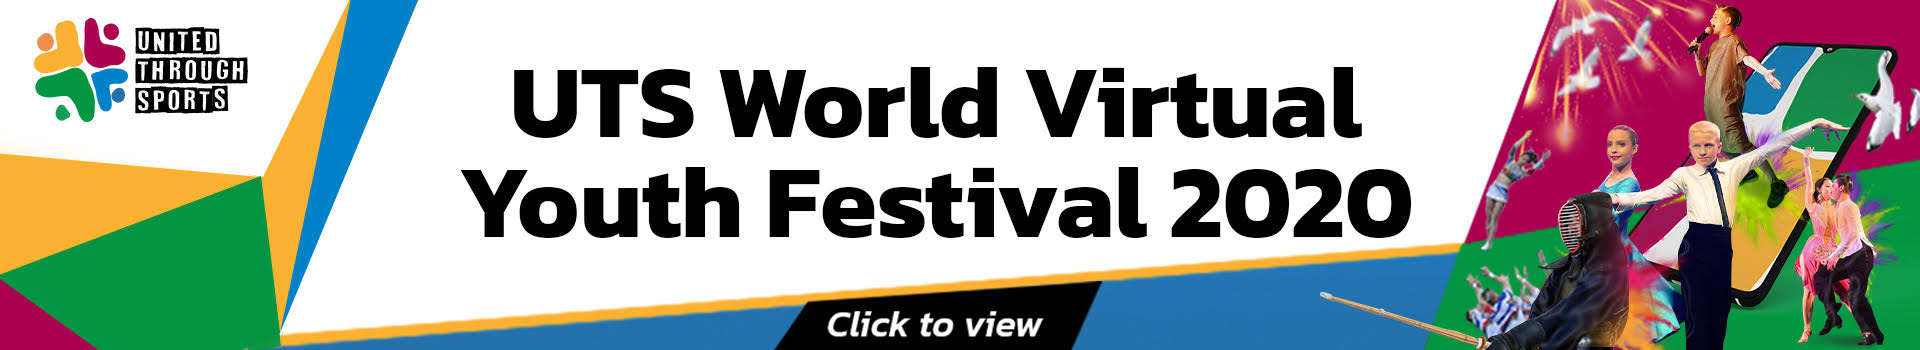 UTS World Virtual Youth Festival 2020 PC